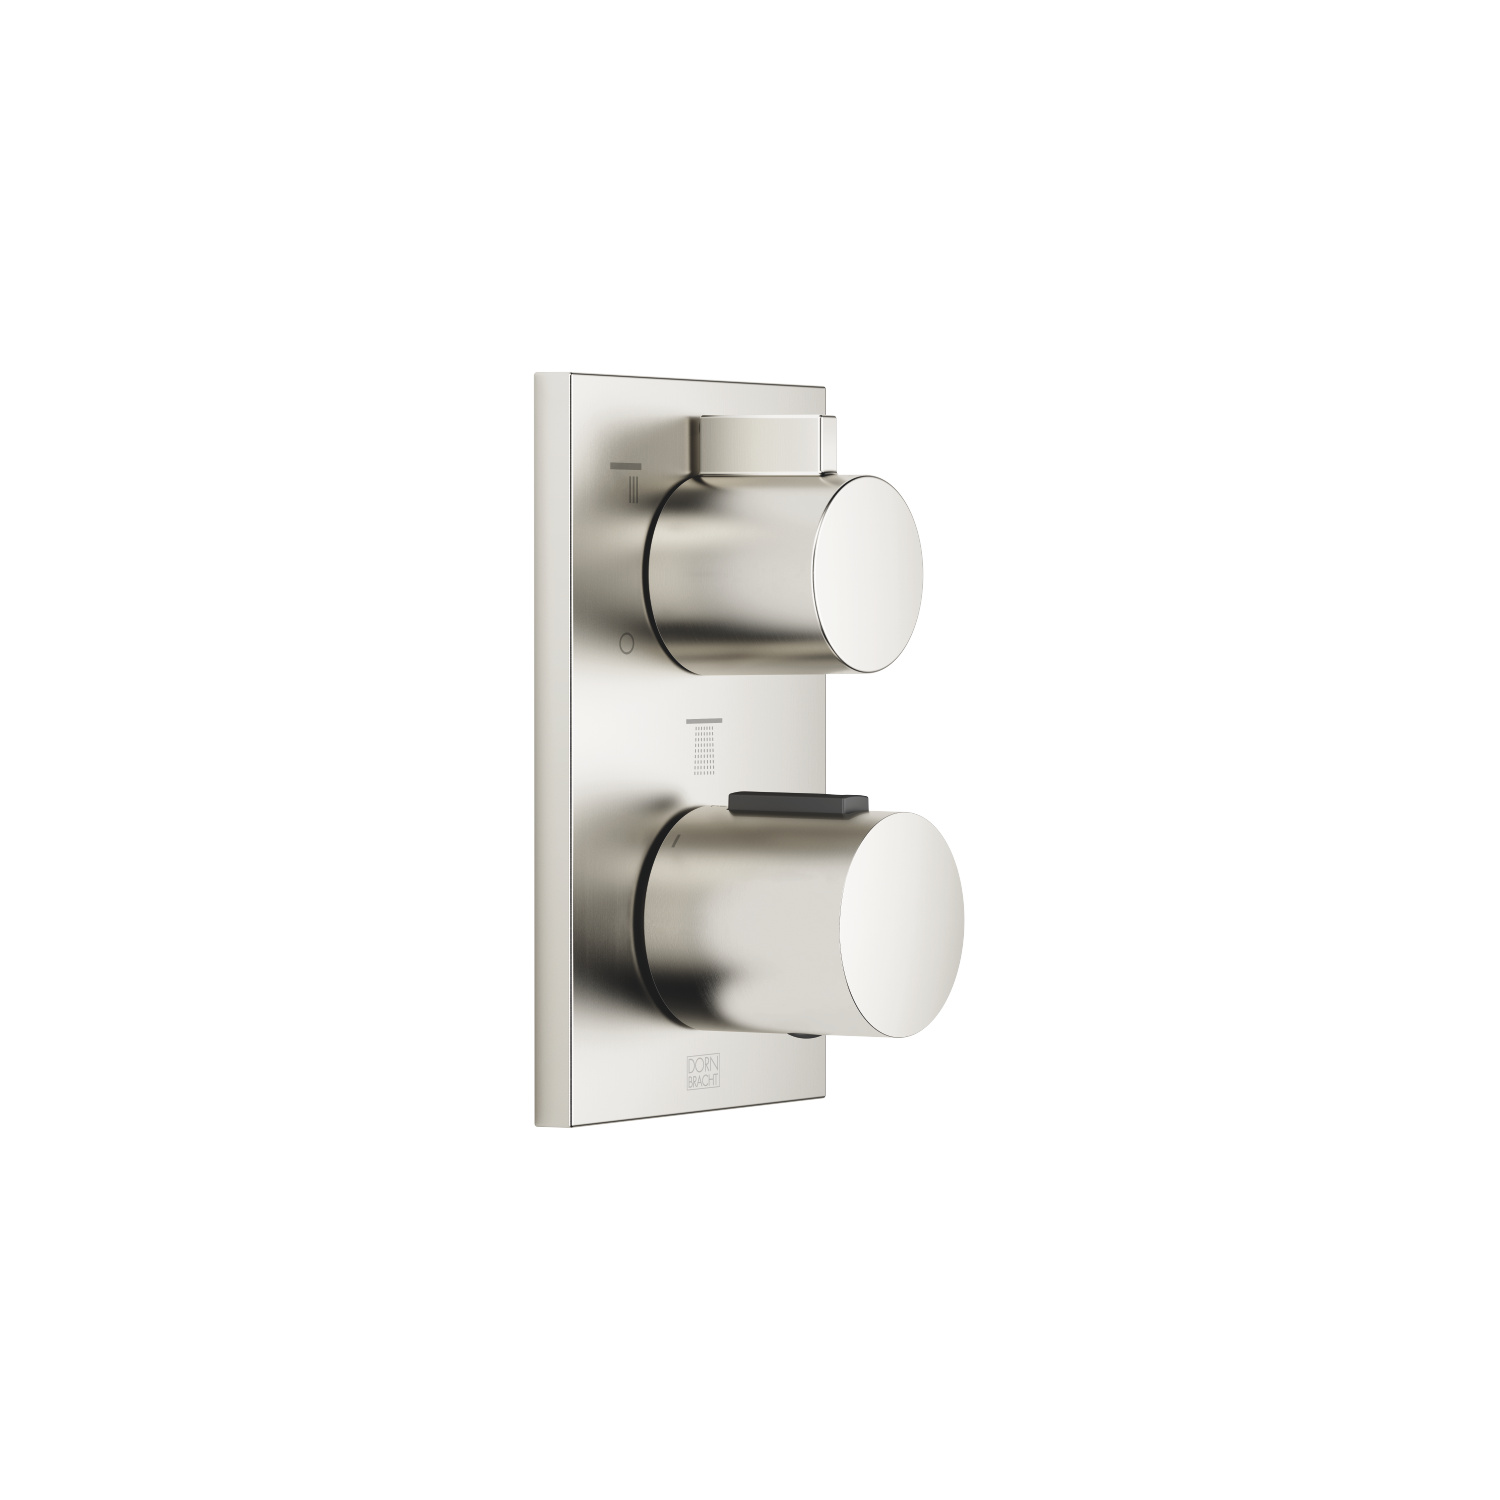 Concealed thermostat with three-way volume control - platinum matte - 36 428 670-06 0010